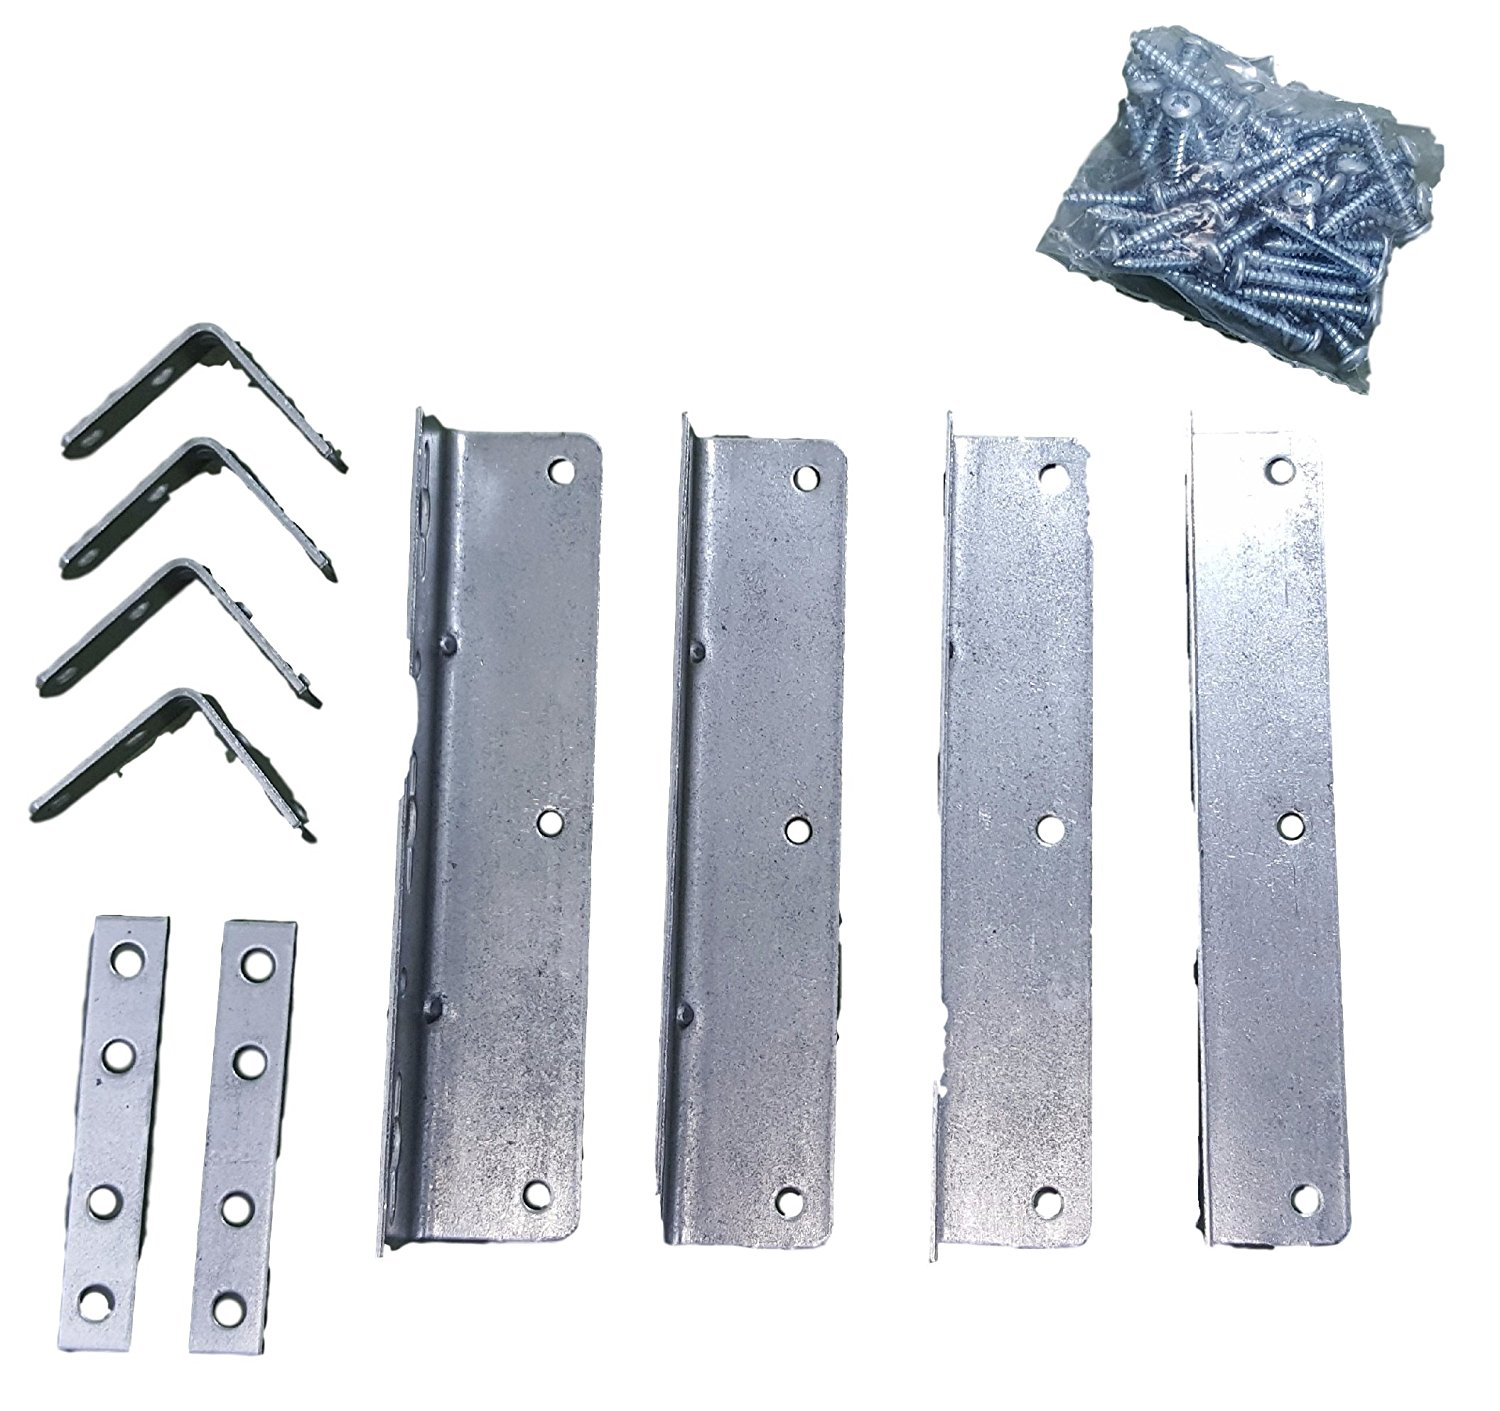 Waterbed Hardware Brackets And Screws For California King Metal Bedframe